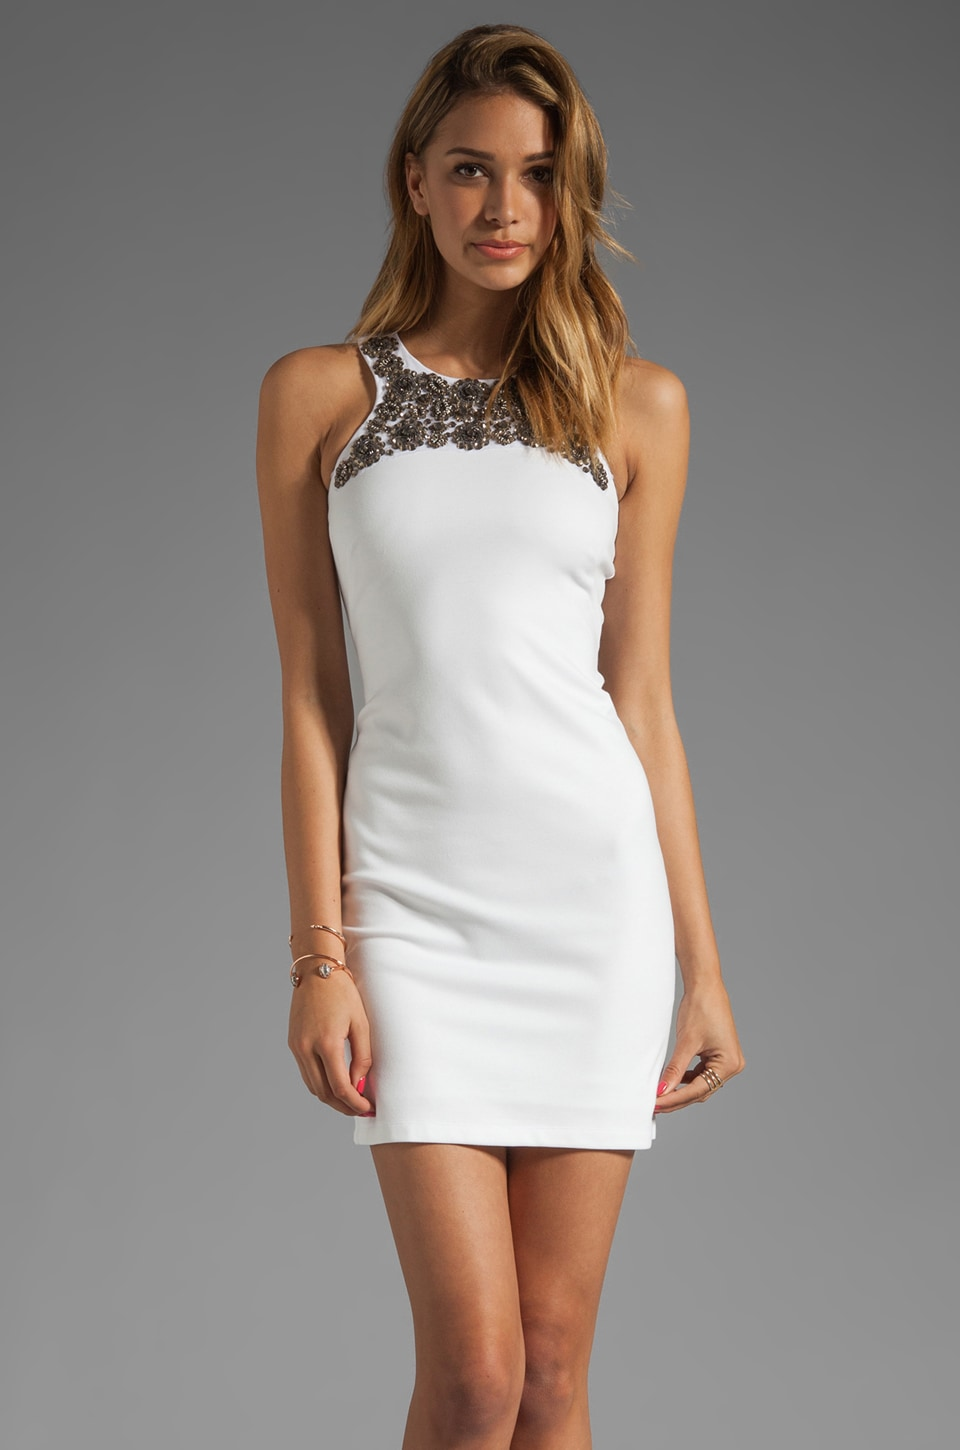 Bailey 44 Tesoro Dress in Blanco